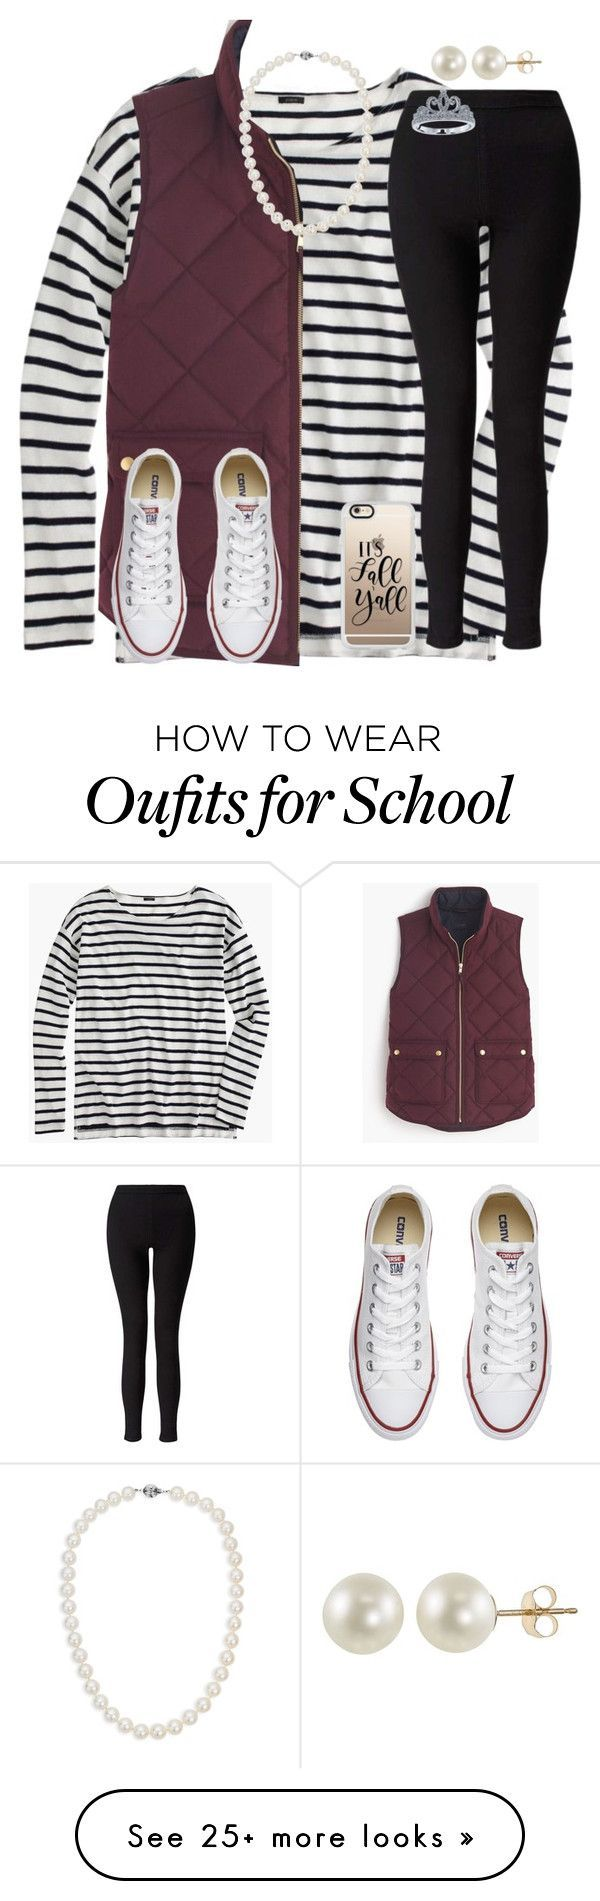 """Day 1- School Festival"" by mimichavi on Polyvore featuring J.Crew, Miss Selfridge, Converse, Blue Nile, PearLustre by Imperial, Casetify, Disney and kennshalloweencontest"